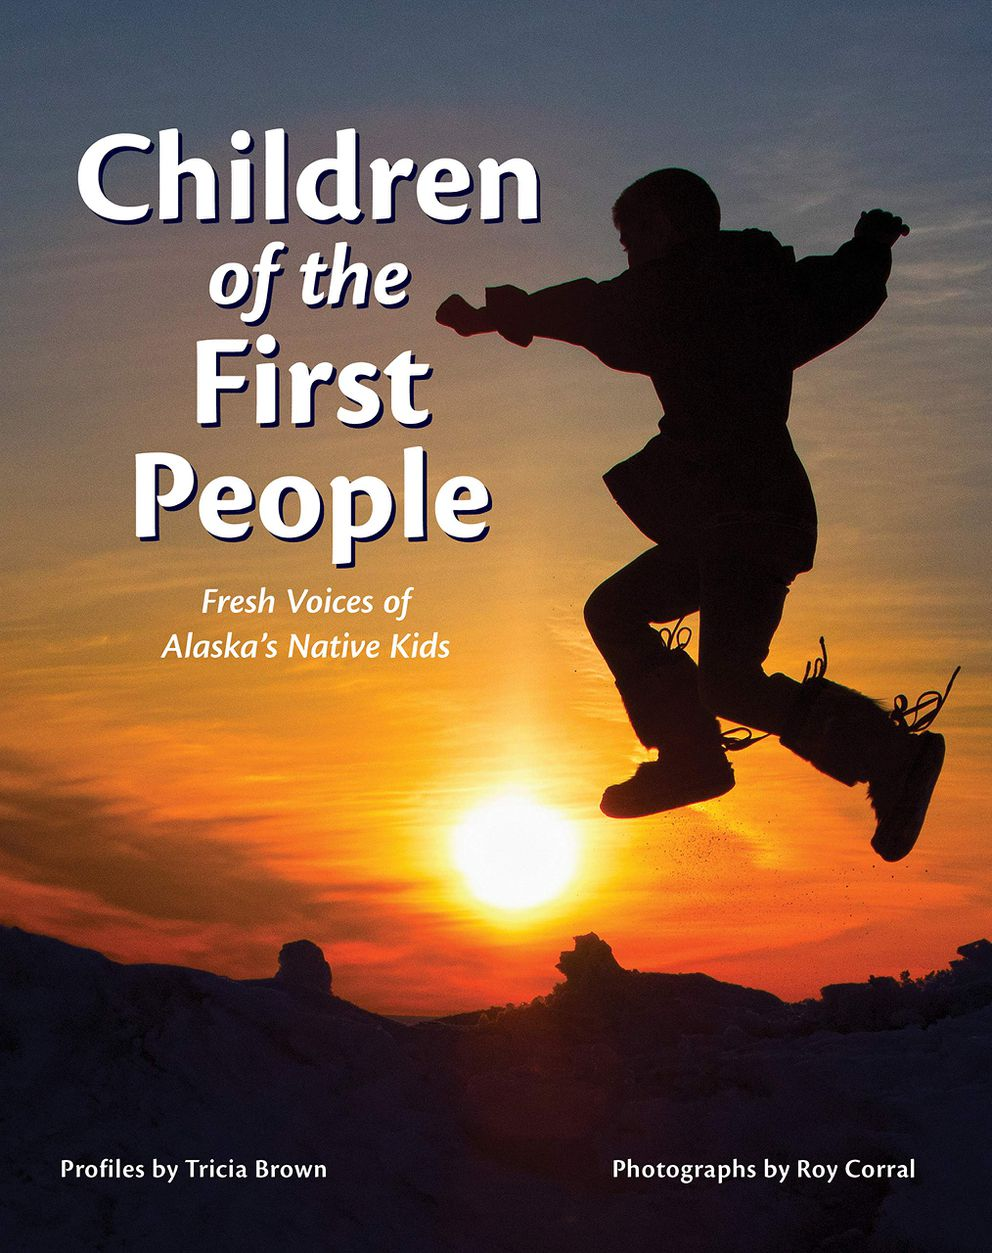 """Children of the First People"" by Tricia Brown, with photographs by Roy Corral"